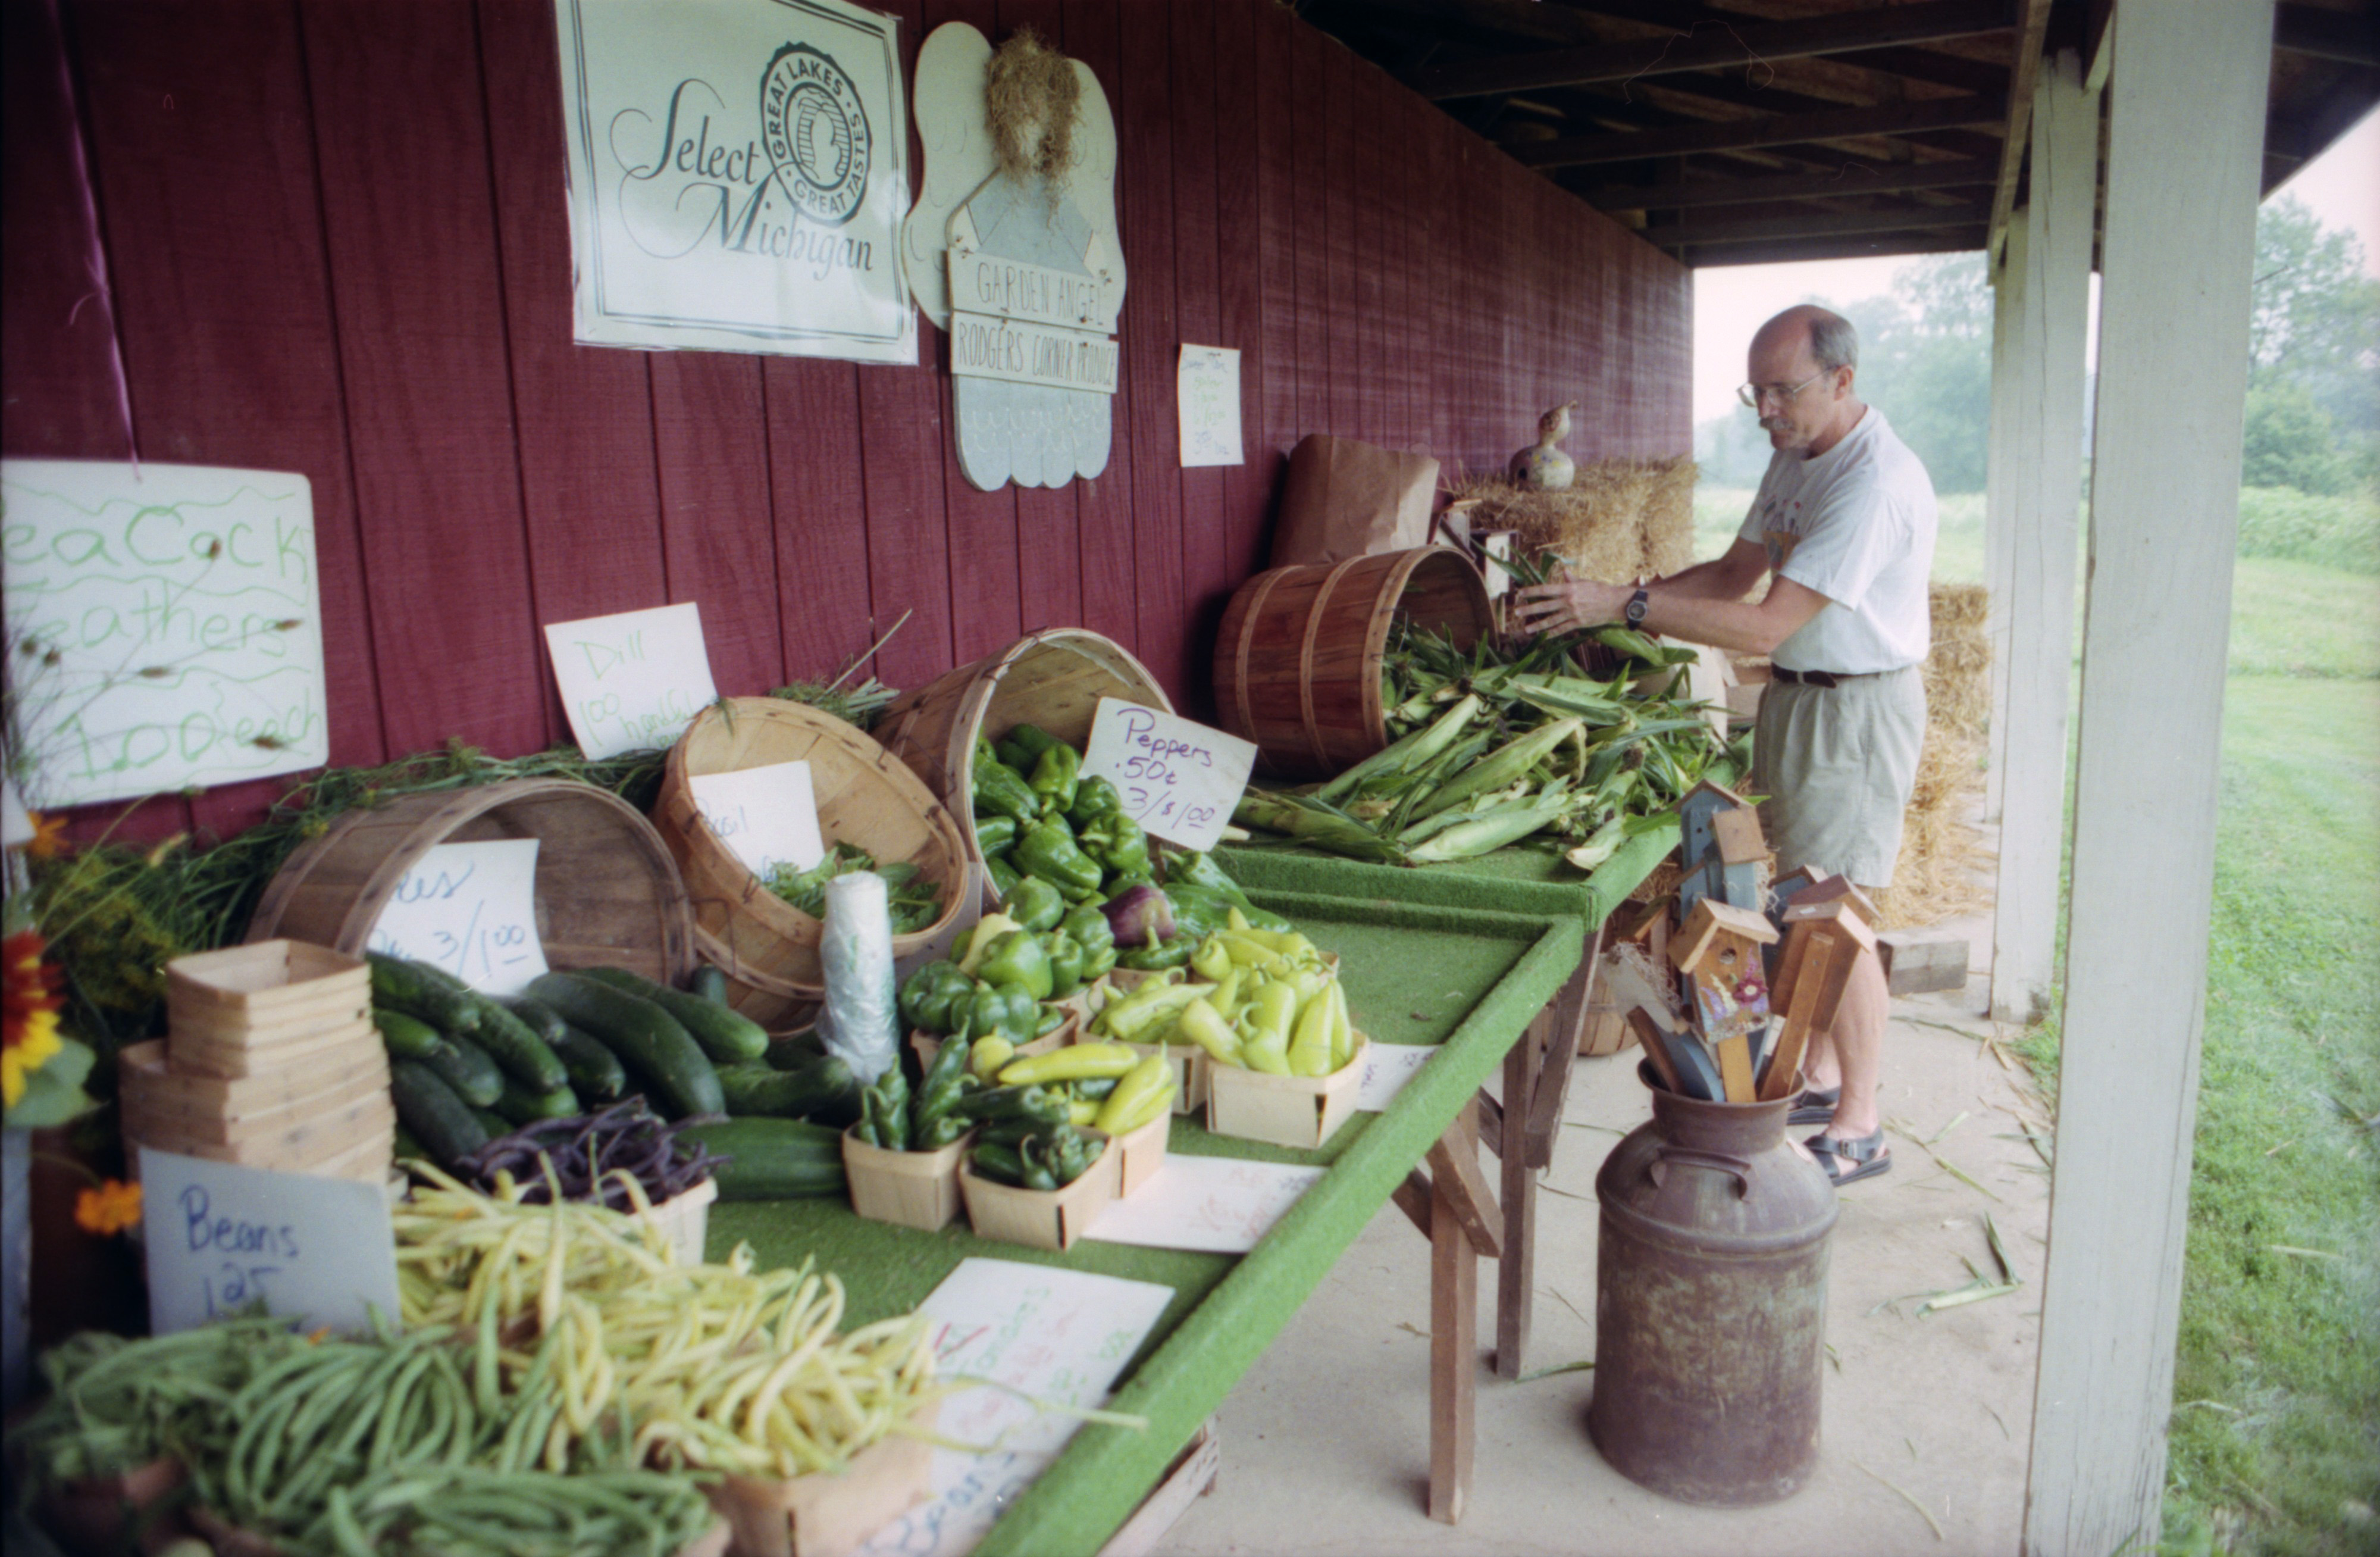 Rodgers Corner Produce, August 2000 image